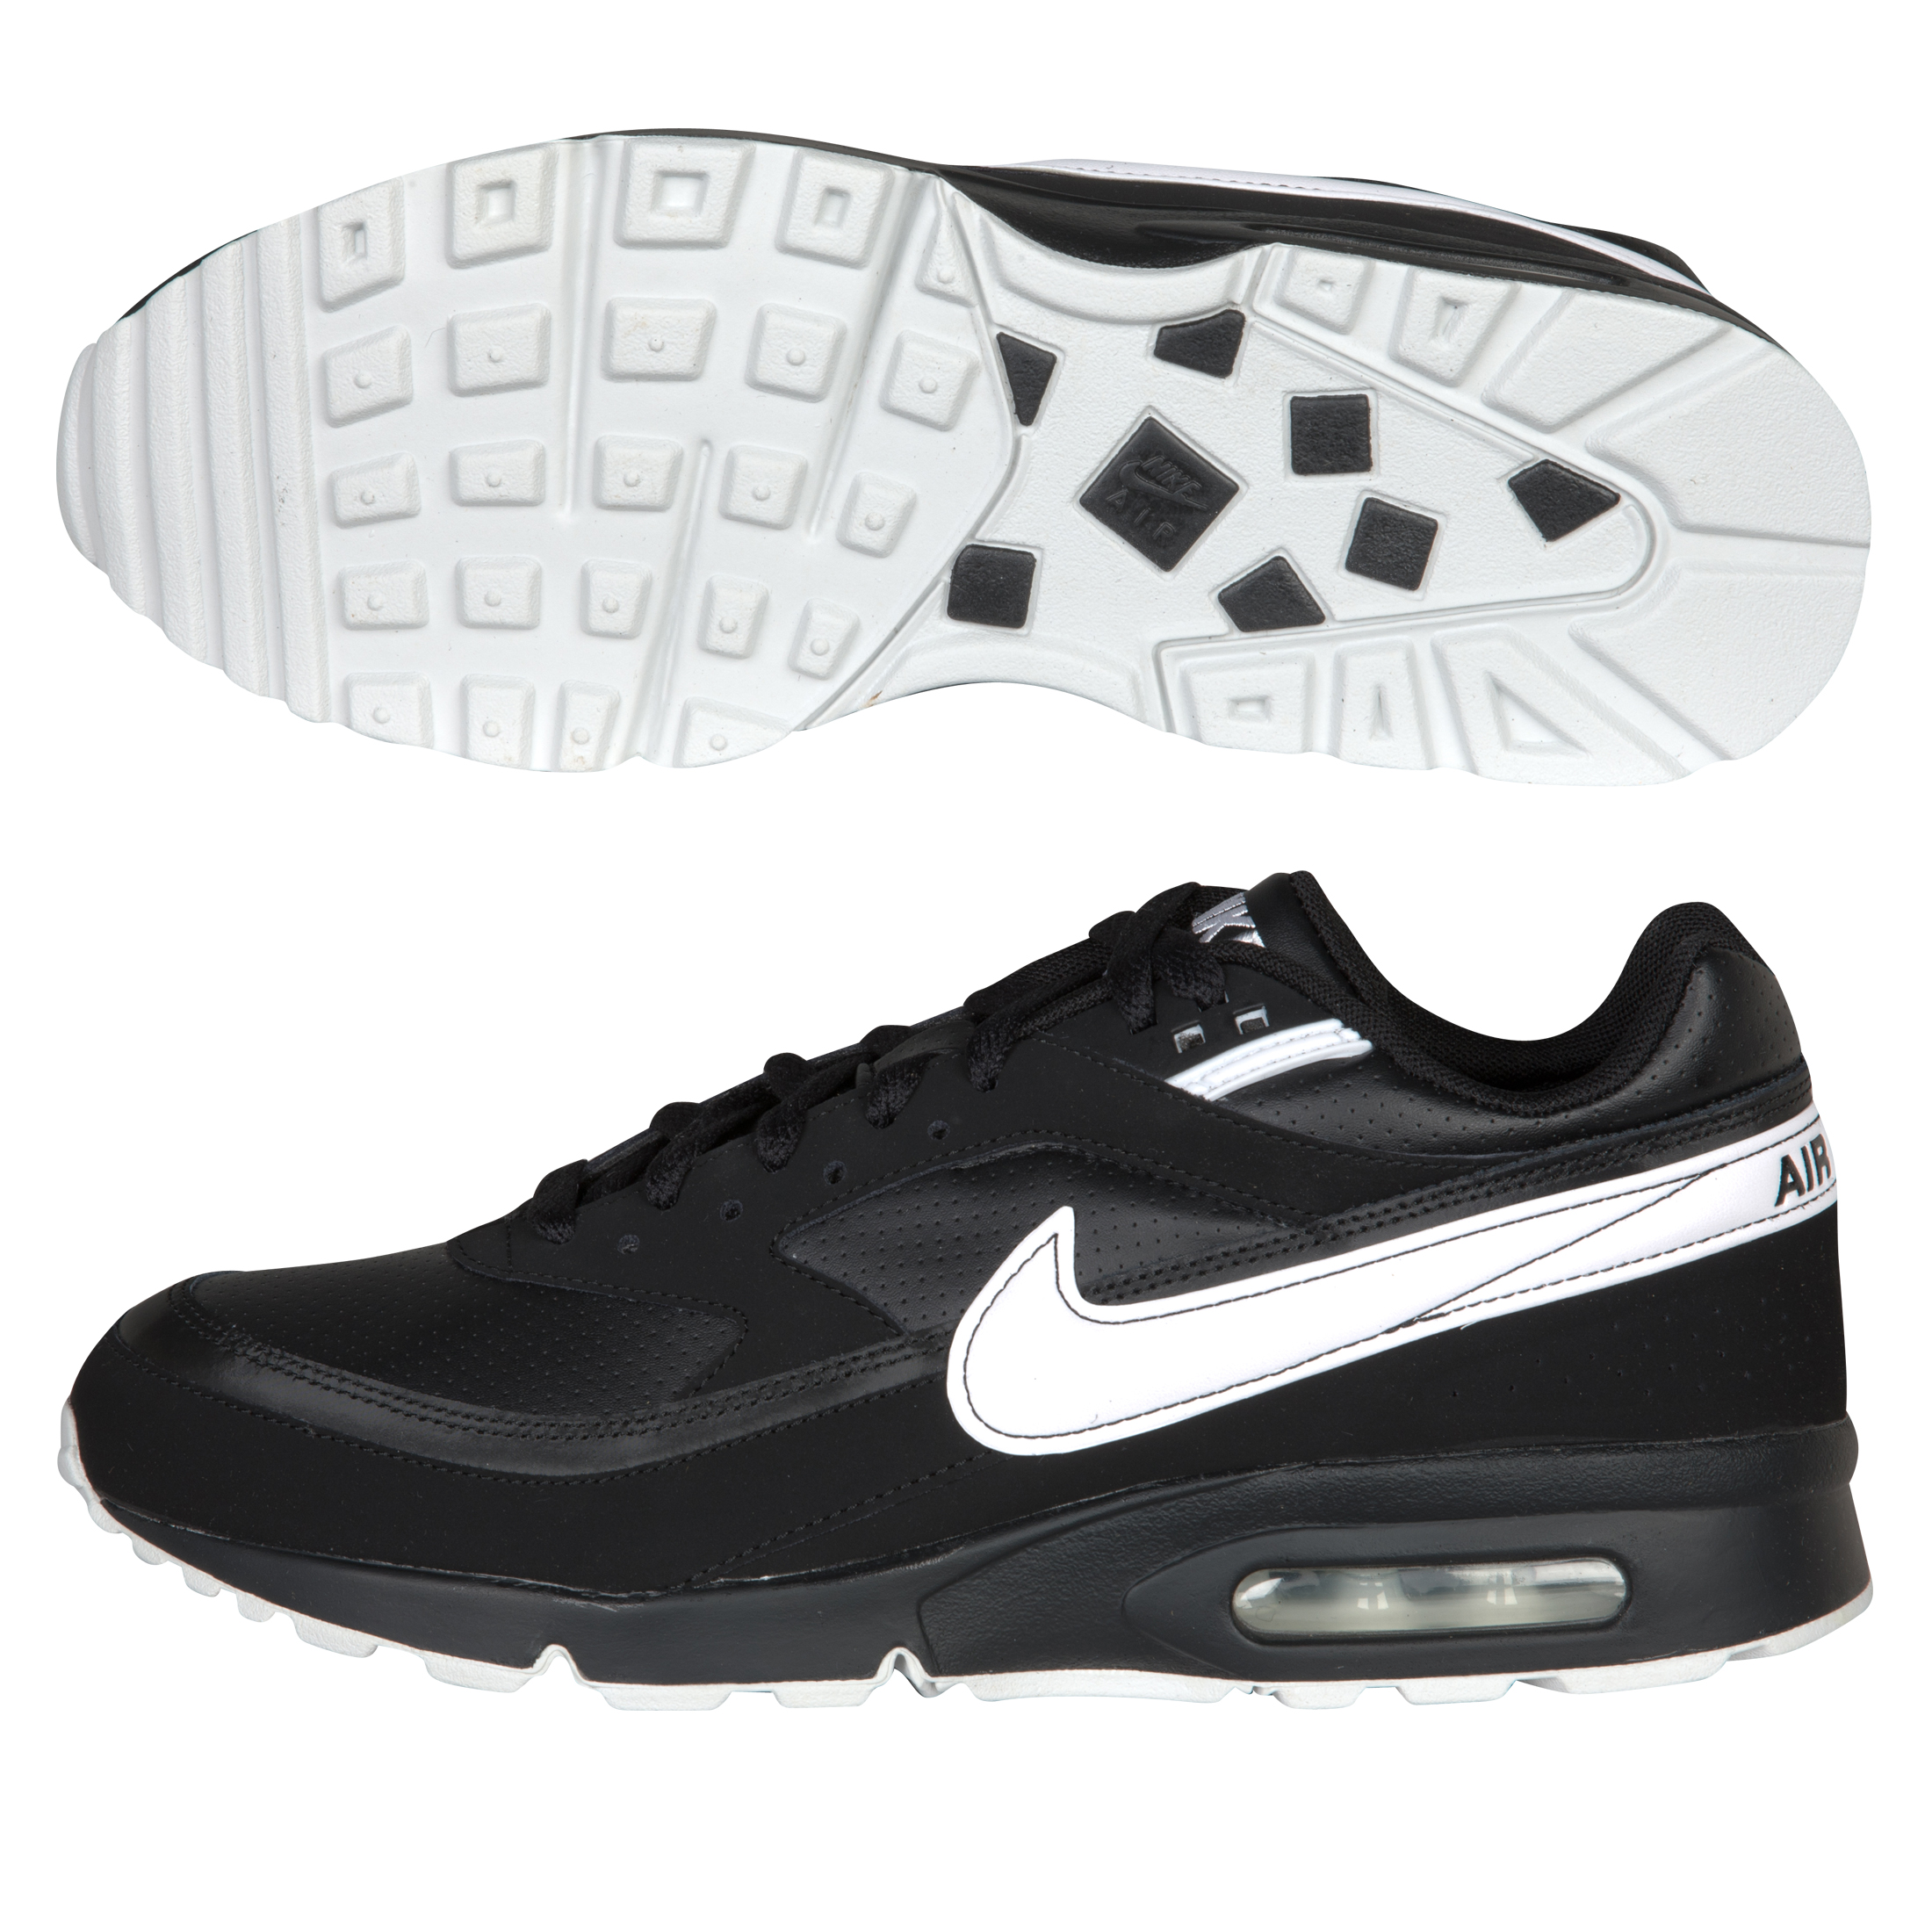 Nike Air Classic BW SI  Trainers - Black/White/Platinum